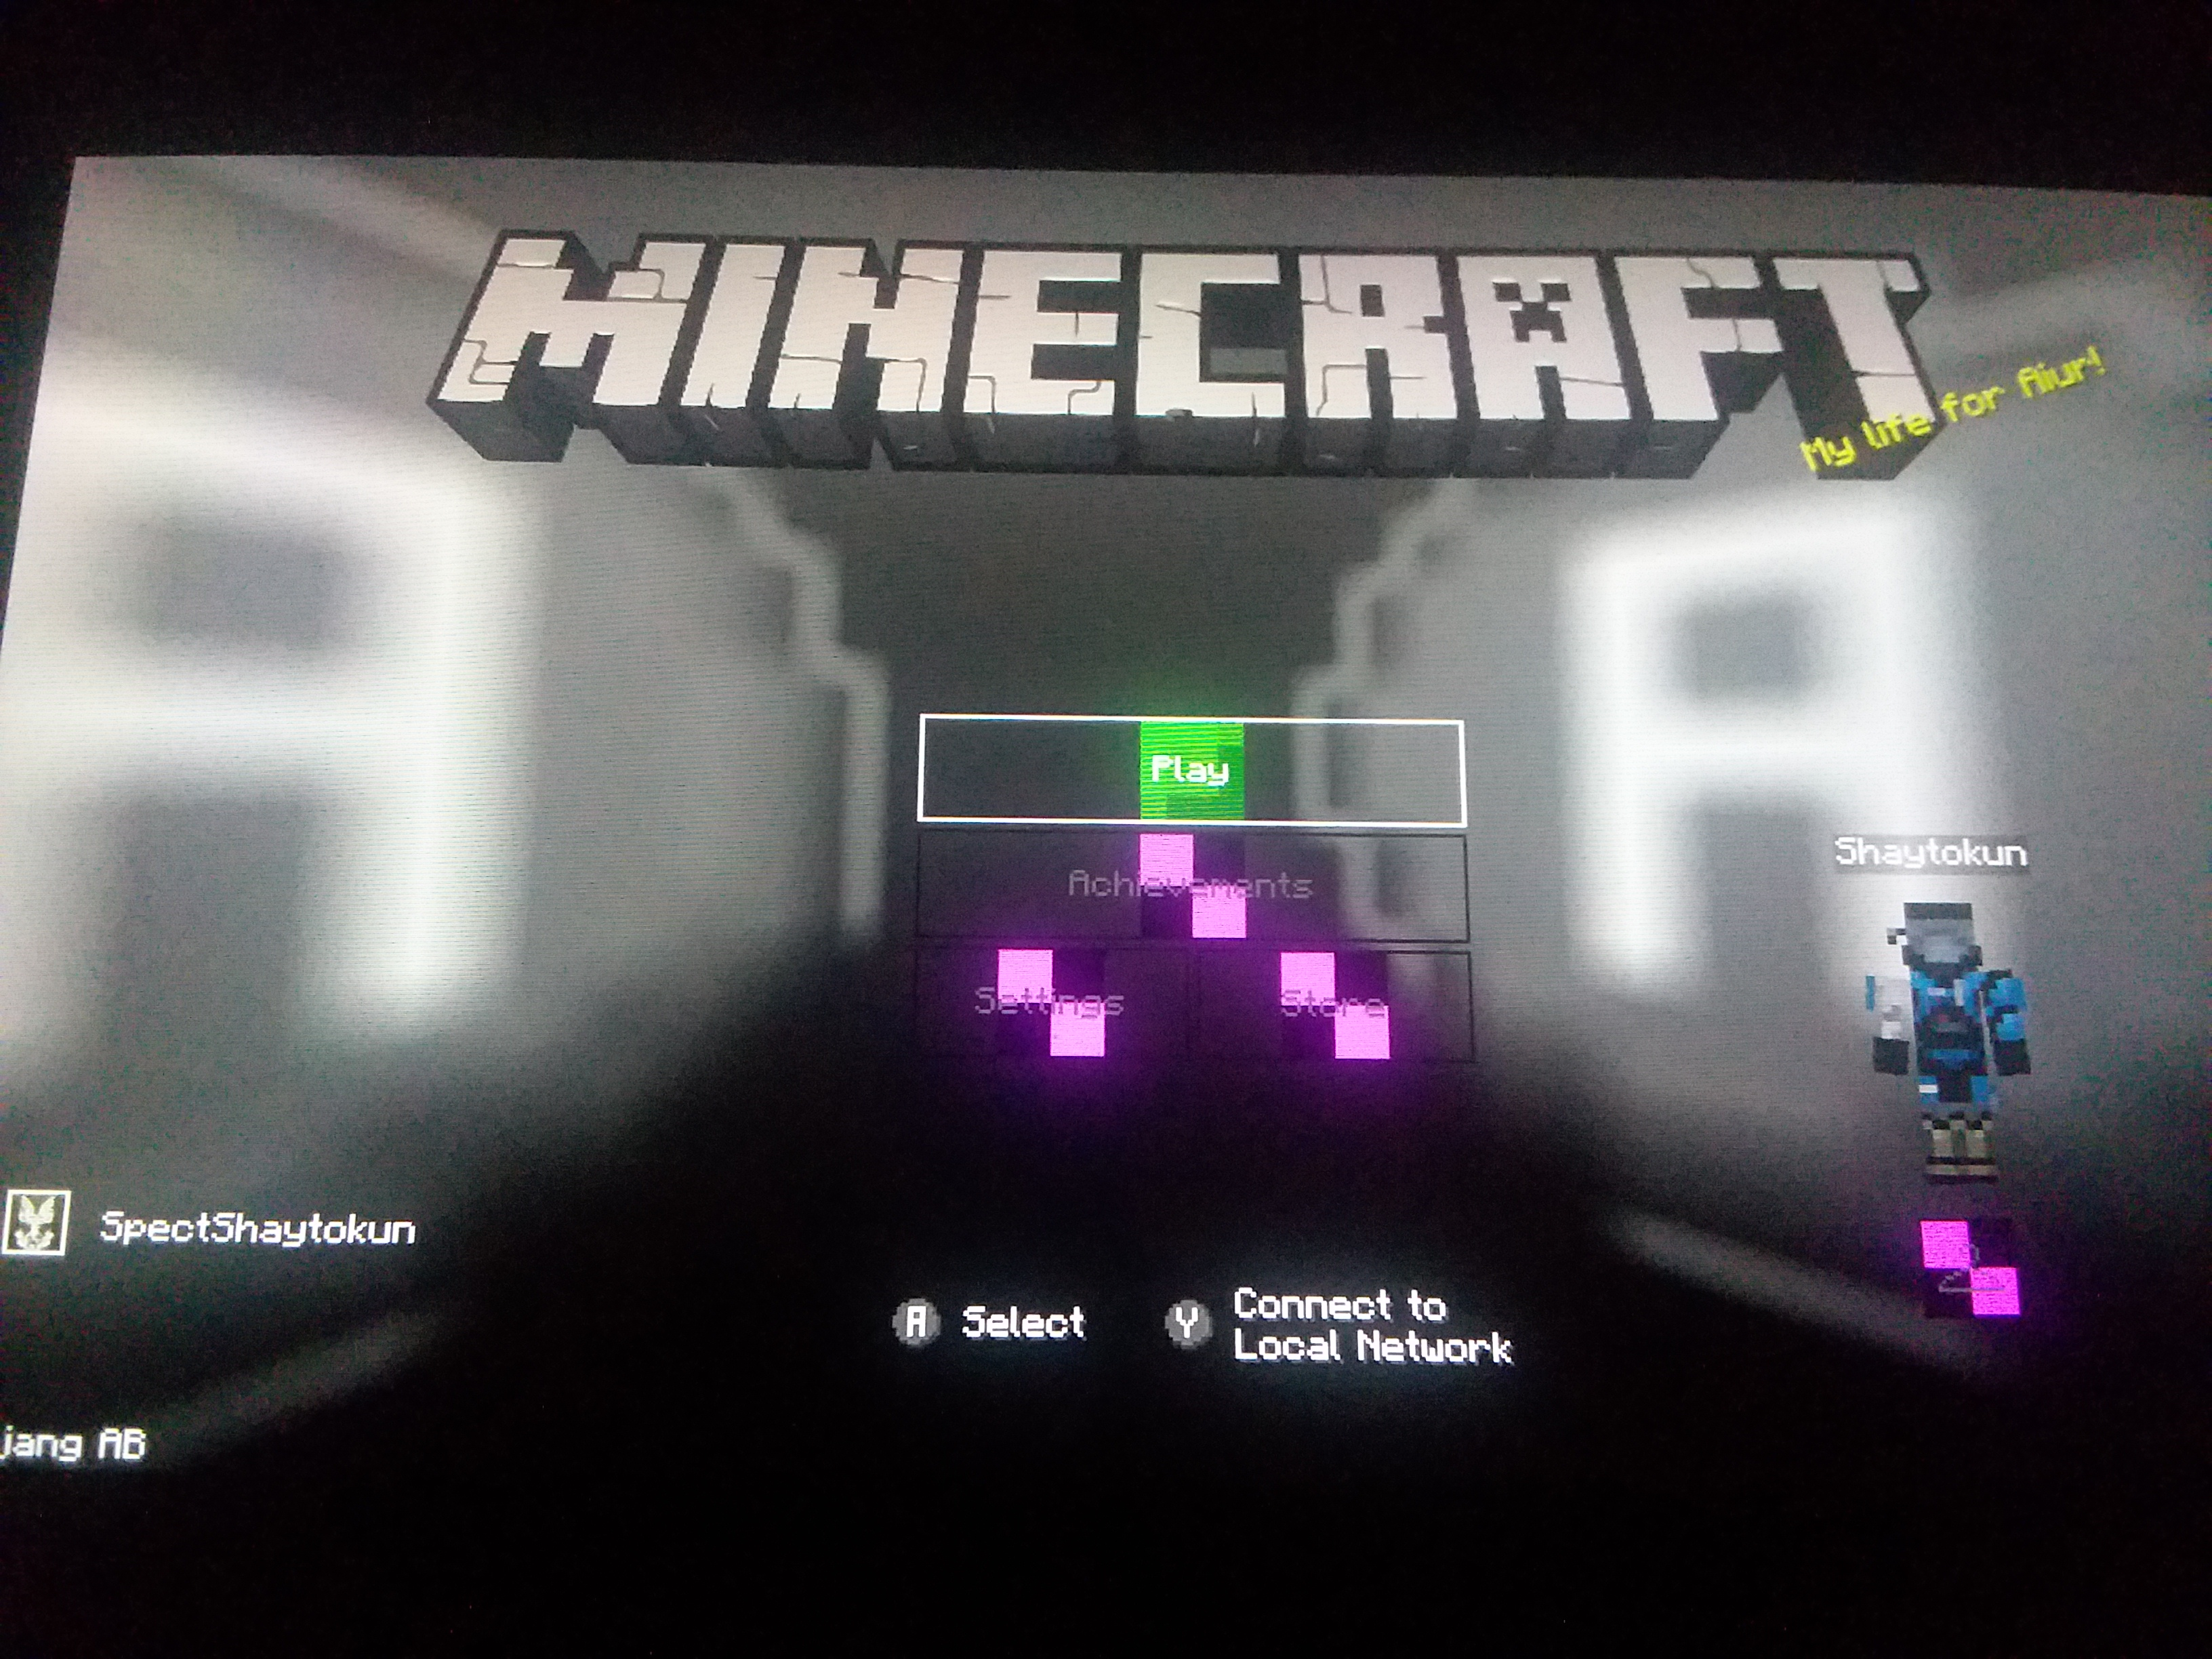 MCPE-34633] Some mashups not working on Switch - corrupted